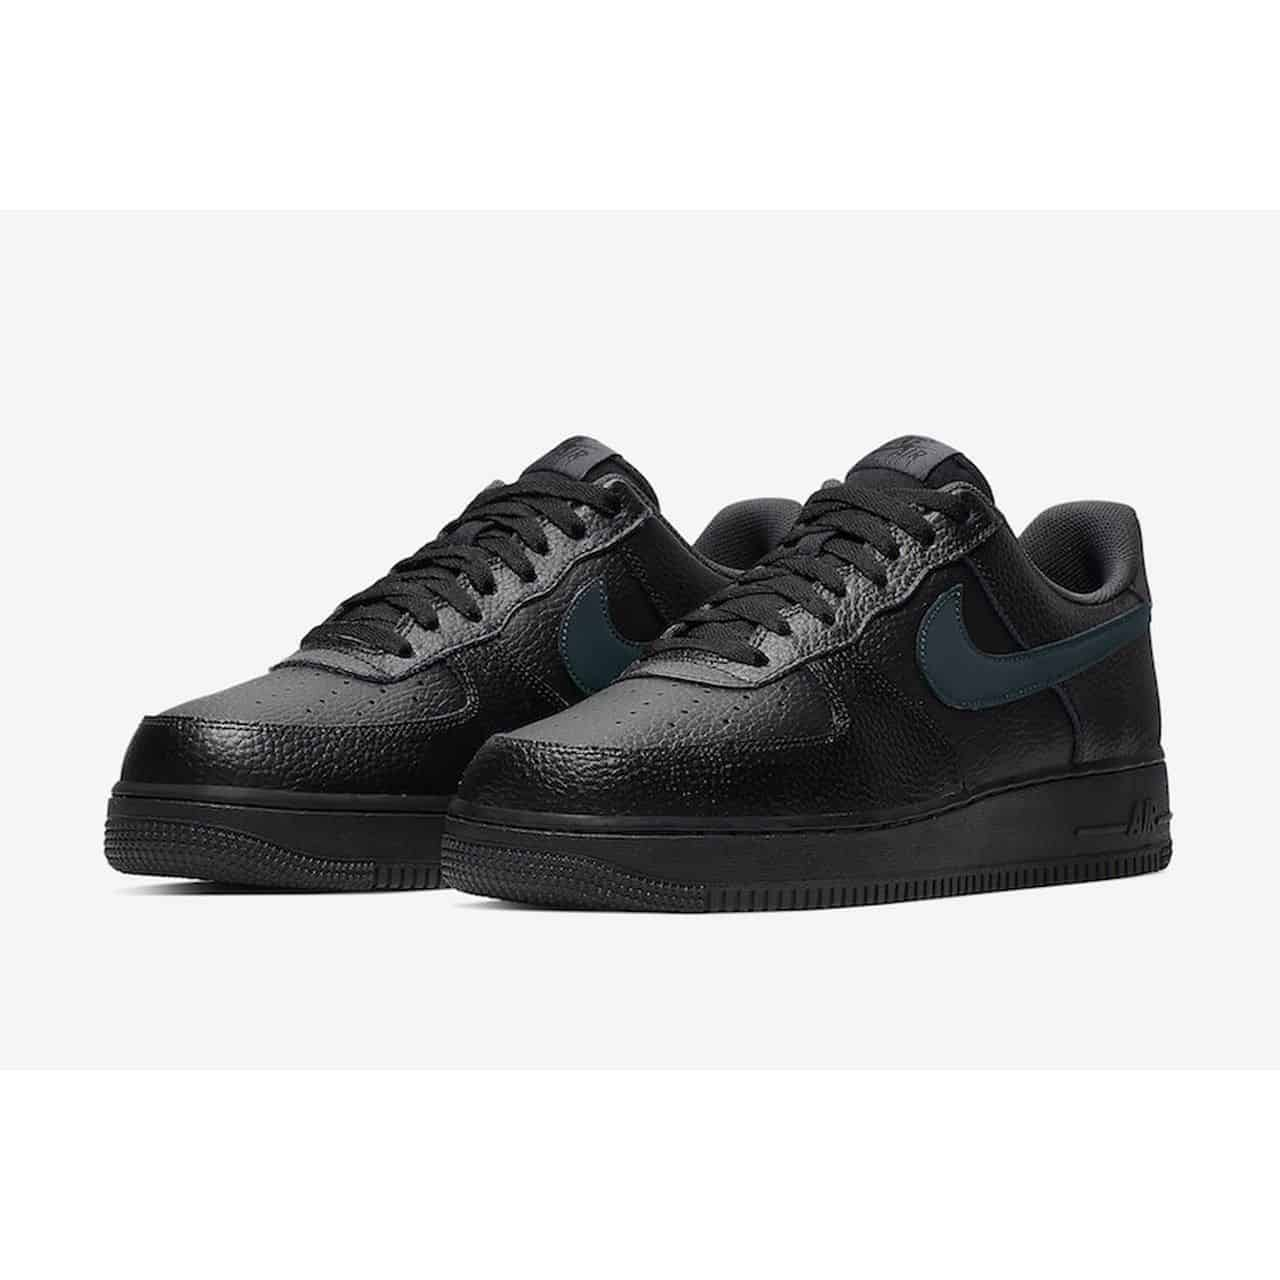 ADIDASI ORIGINALI NIKE AIR FORCE 1'07 3 - CI0059 001